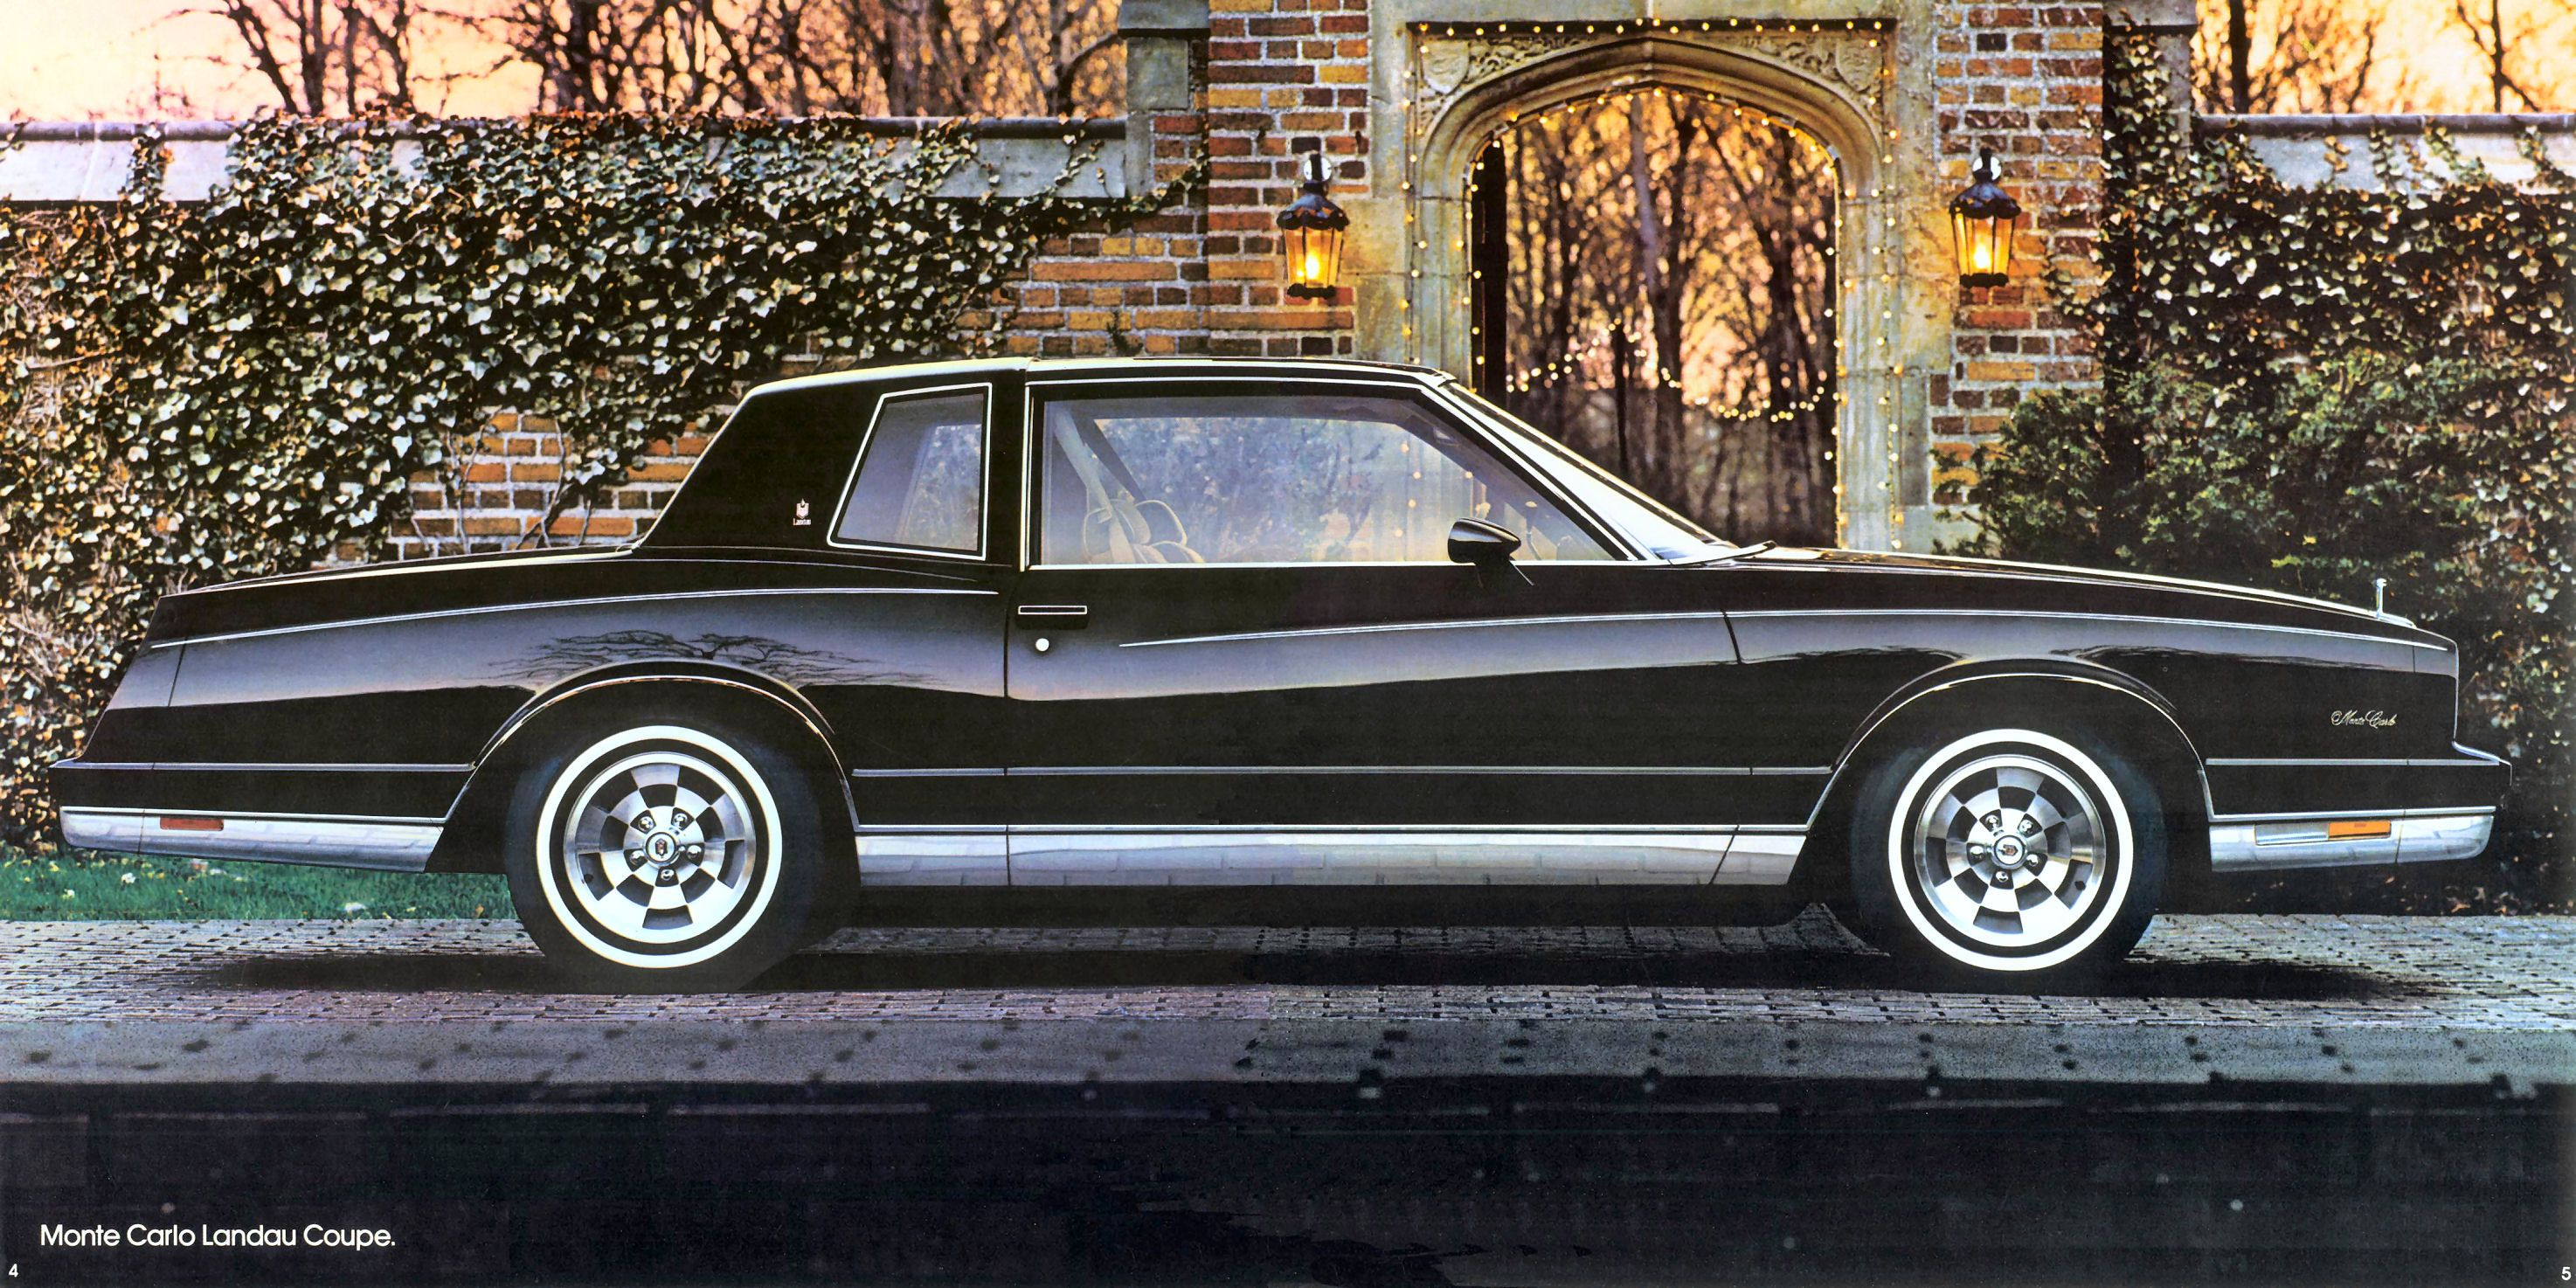 ce8cf9abf49fc352bf3dc542eb746841 Take A Look About 1980 Monte Carlo for Sale with Mesmerizing Photos Cars Review